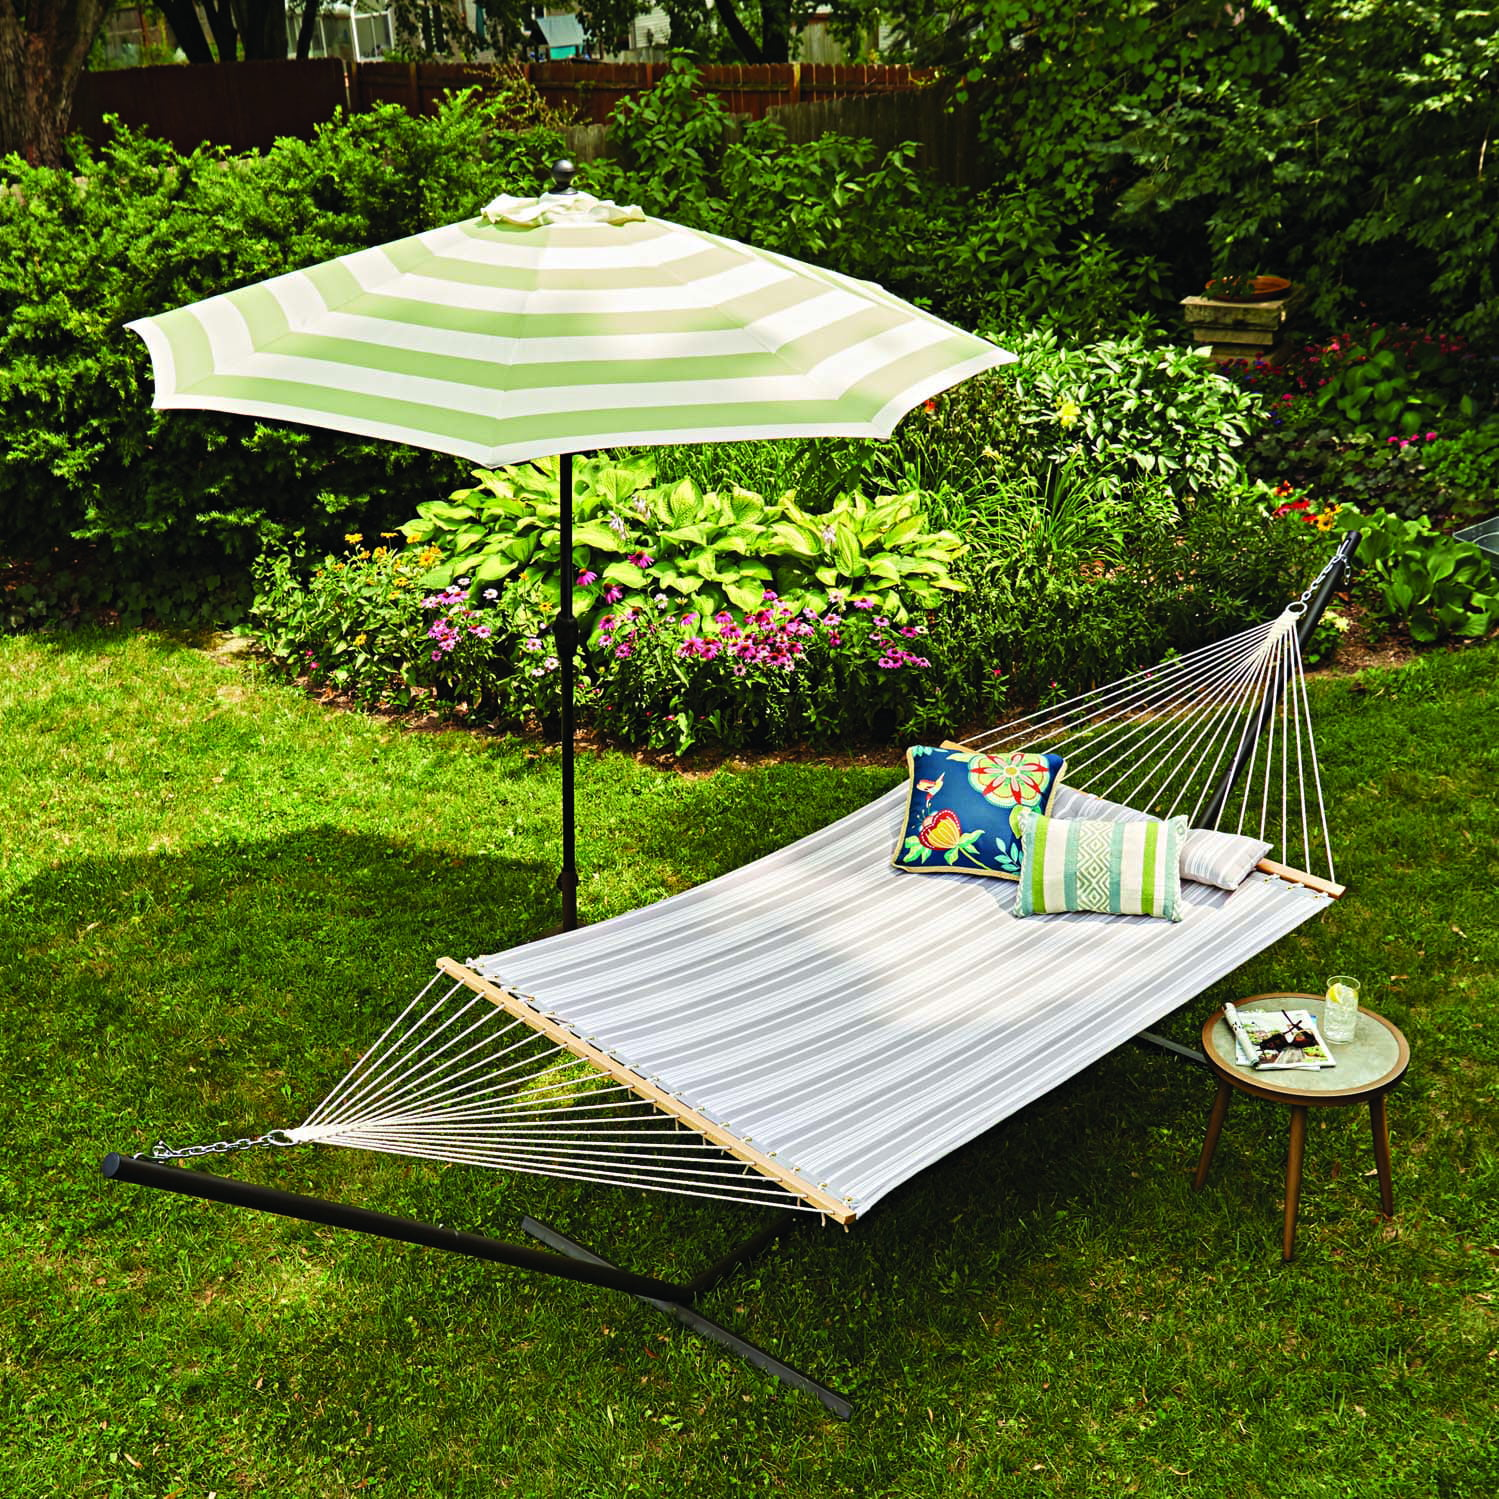 Better Homes & Gardens 15-Foot Two Person Quilted Hammock � Herringbone Stripe by Better Homes & Gardens